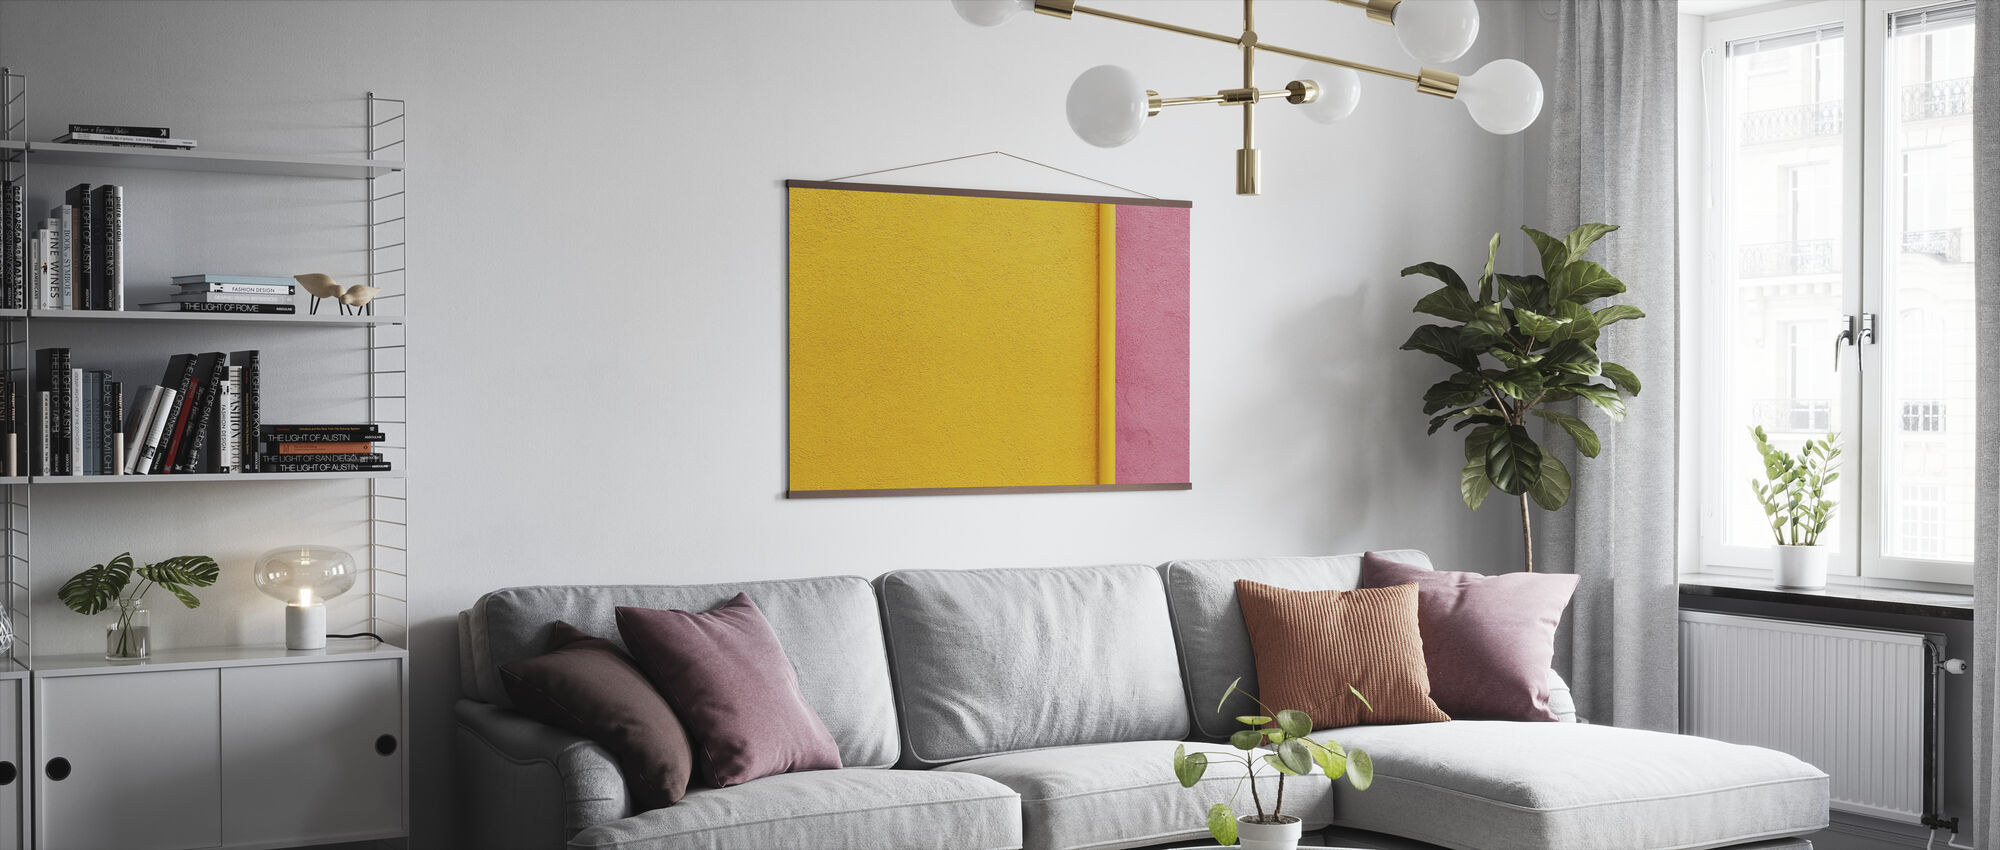 Yellow and Pink Wall with Pipe - Poster - Living Room